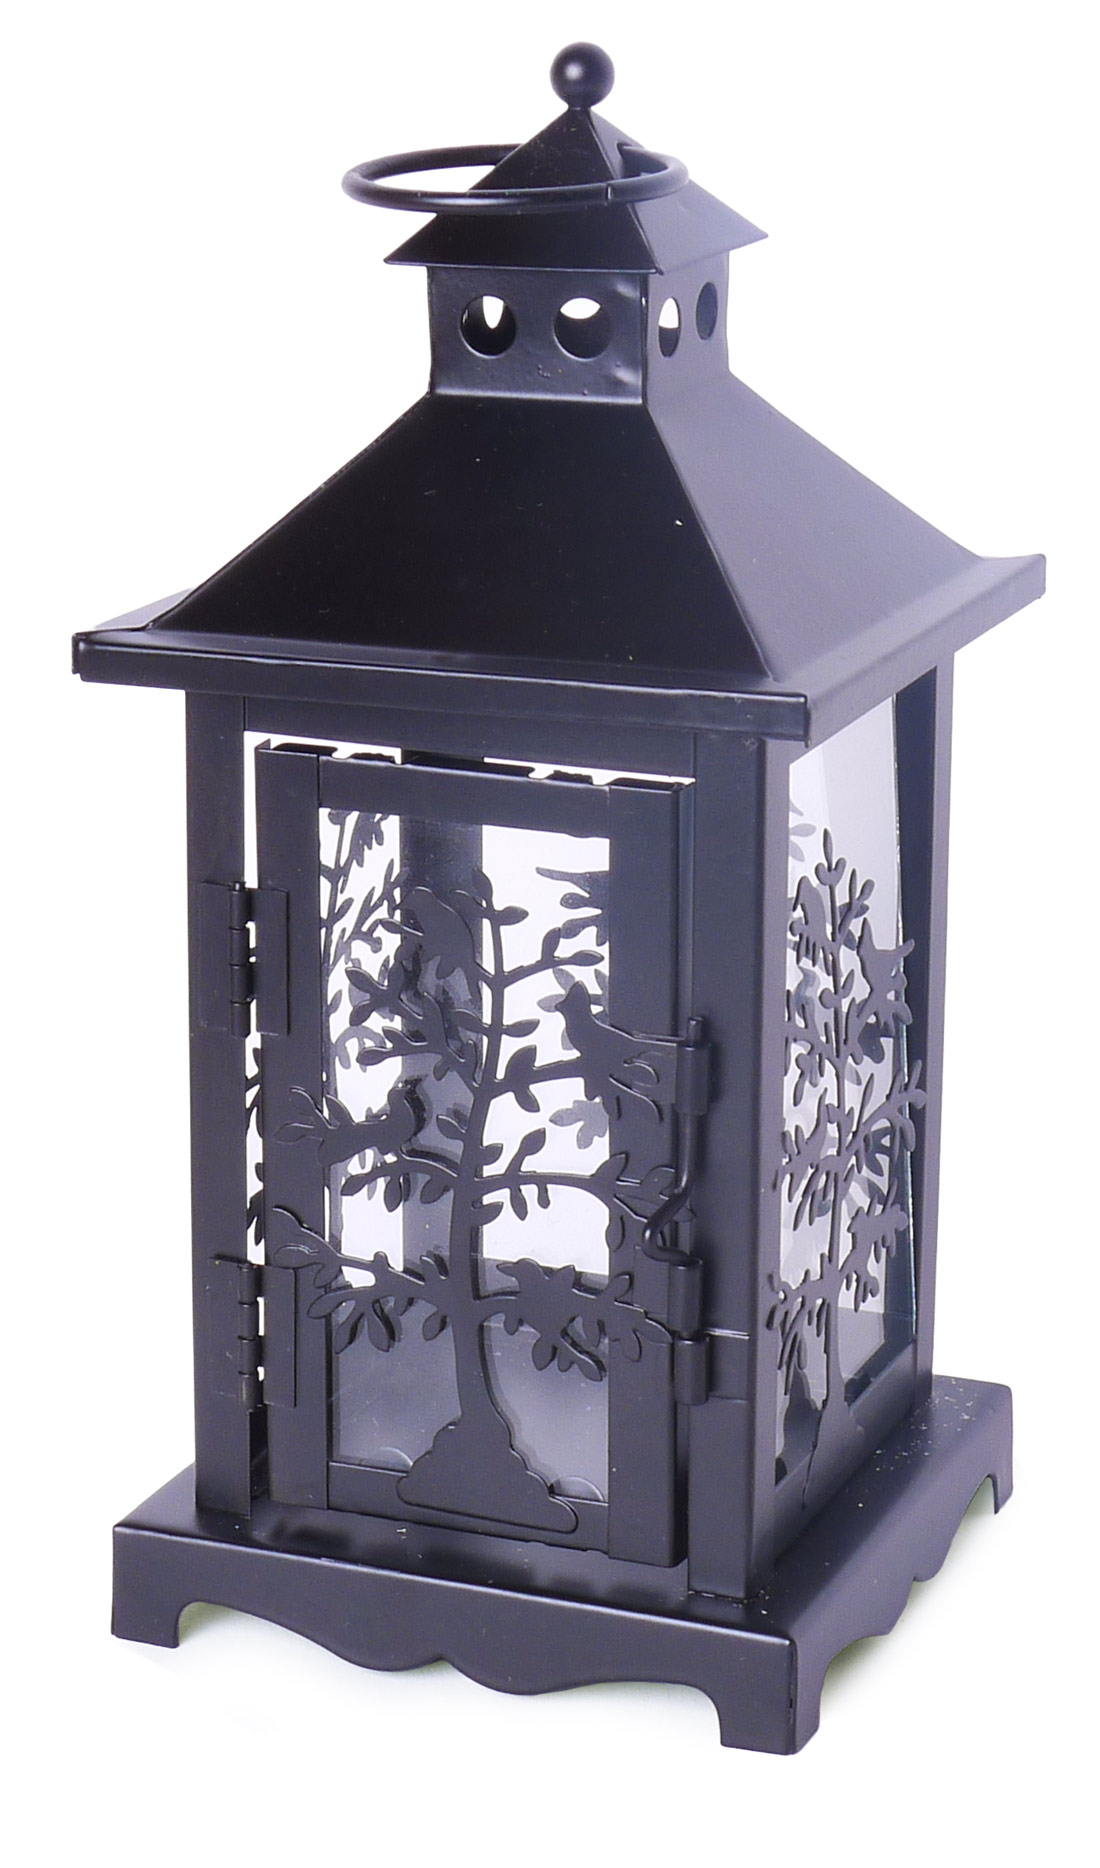 Image of Black Candle Lantern 8-Inch, Set of 2